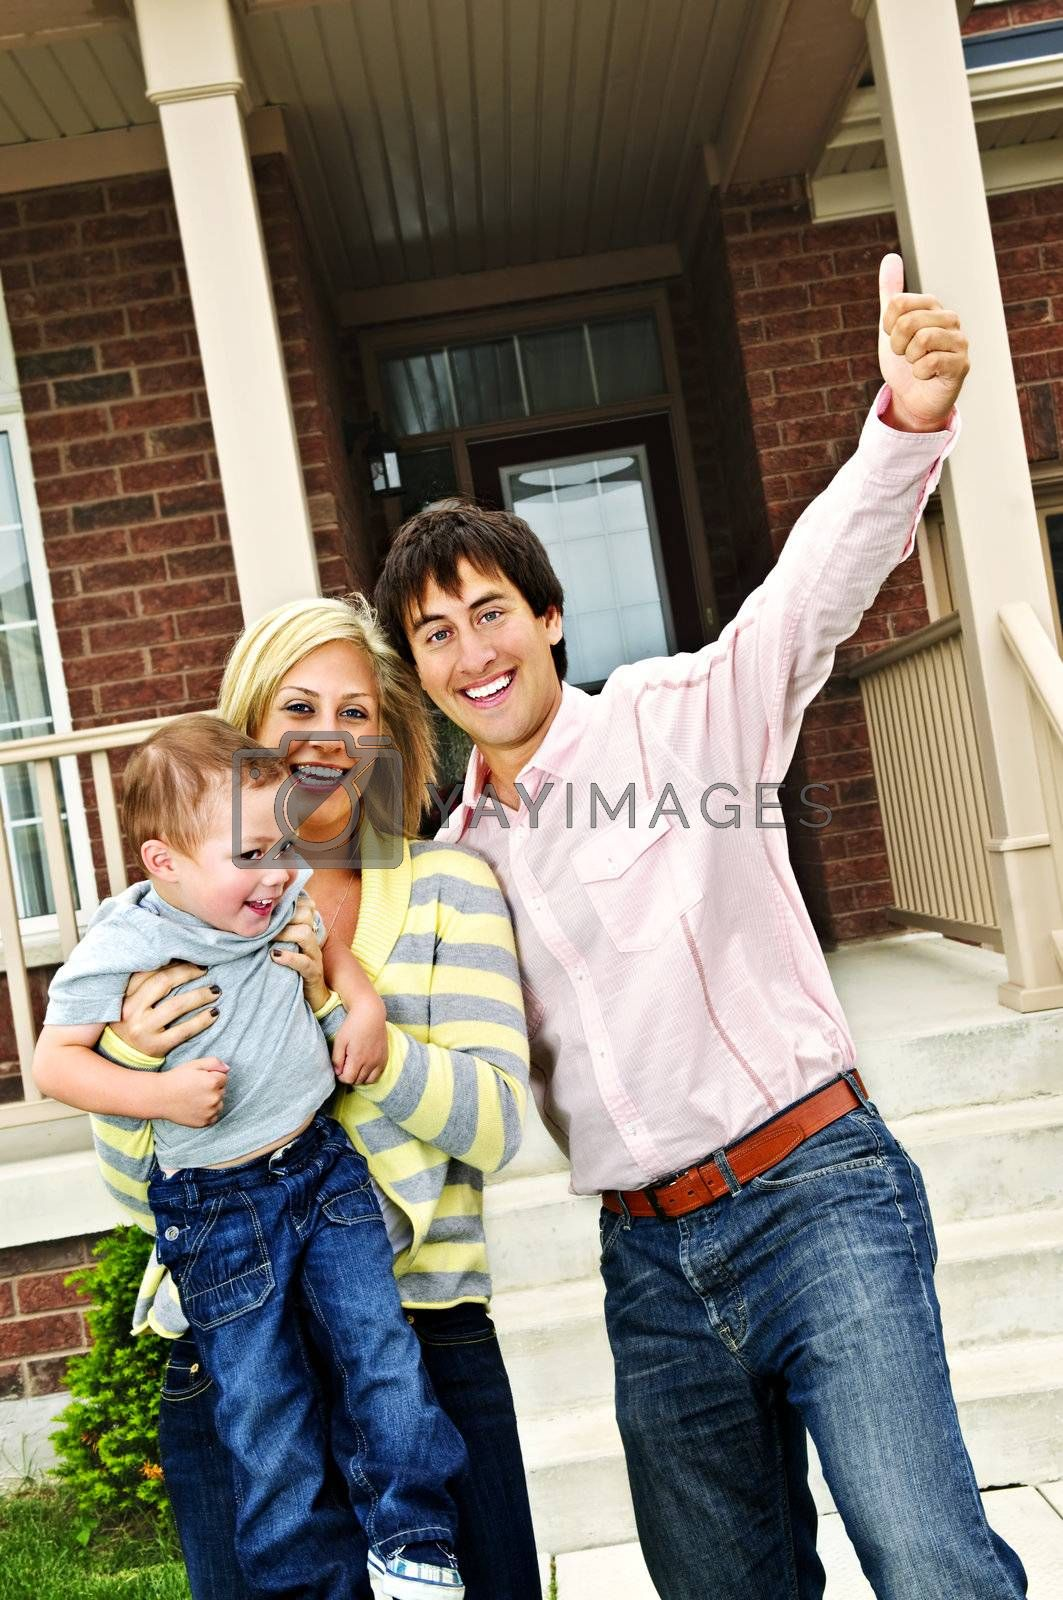 Excited family at home by elenathewise